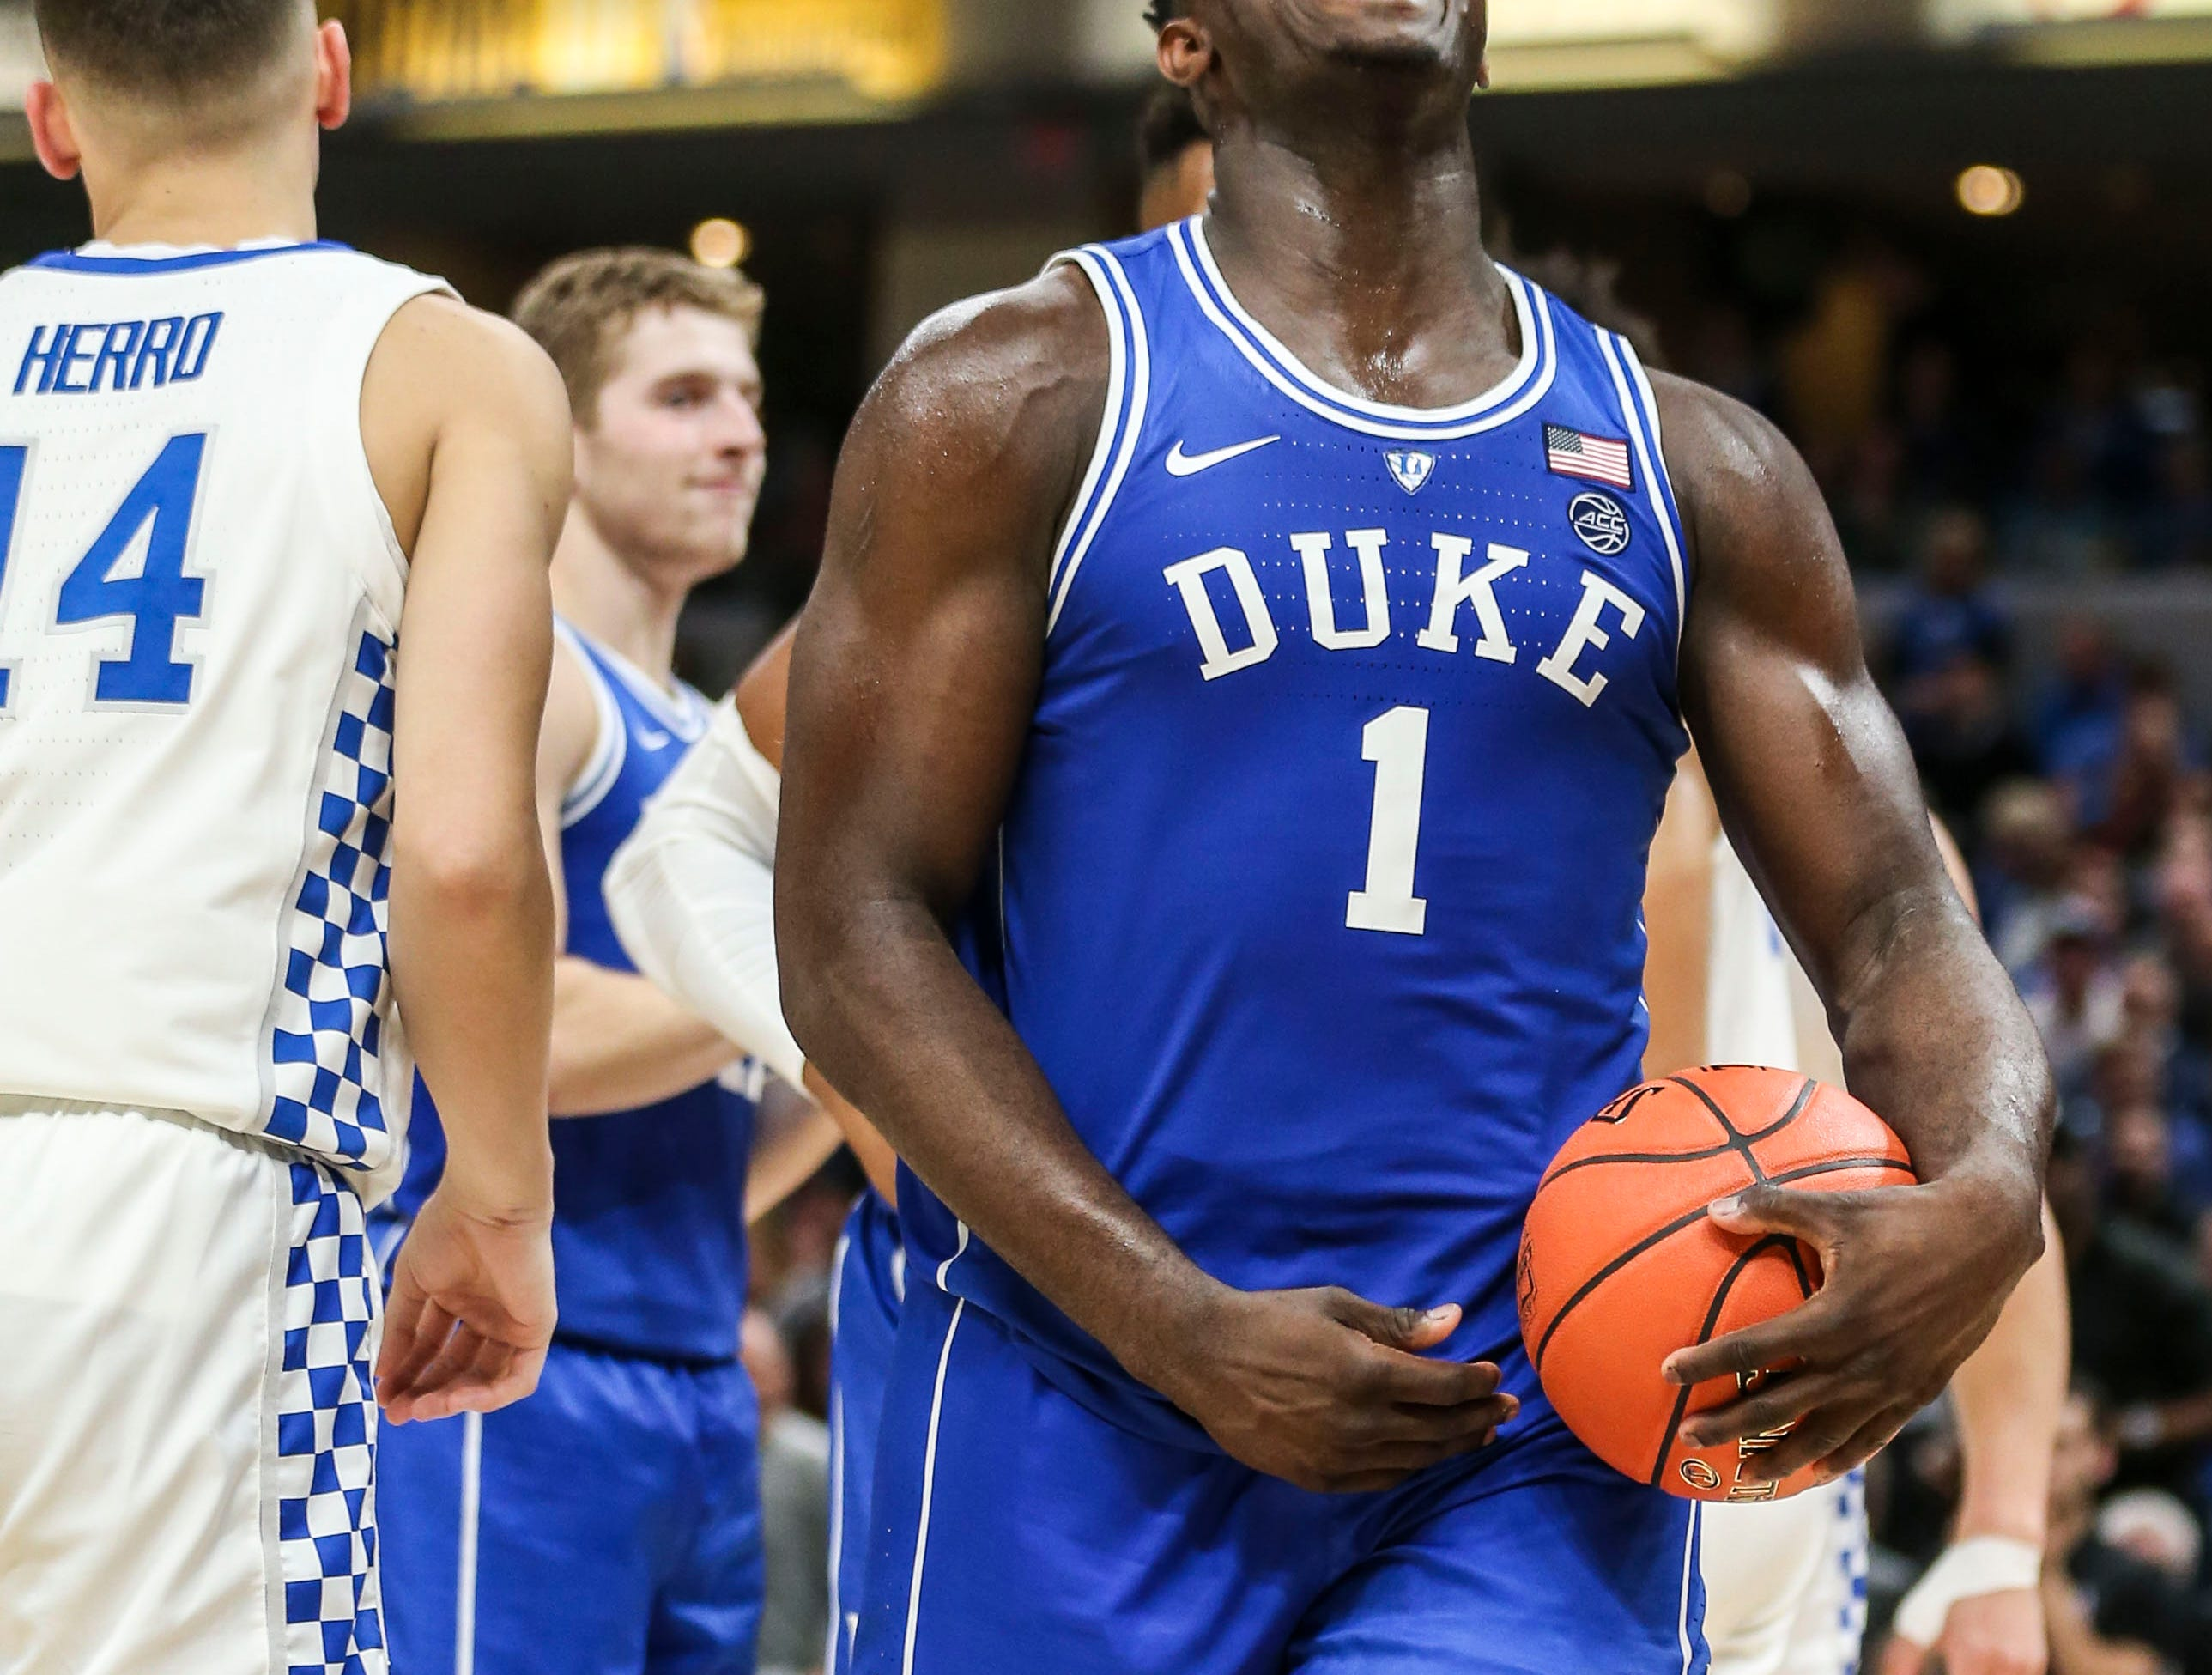 Duke's Zion Williamson roared after drawing the foul as the freshman -- who played like a  veteran senior -- scored 28 points against an overmatched Kentucky team as the Blue Devils crushed the Wildcats 118-84 in the Champions Classic Tuesday night. Nov. 6, 2018